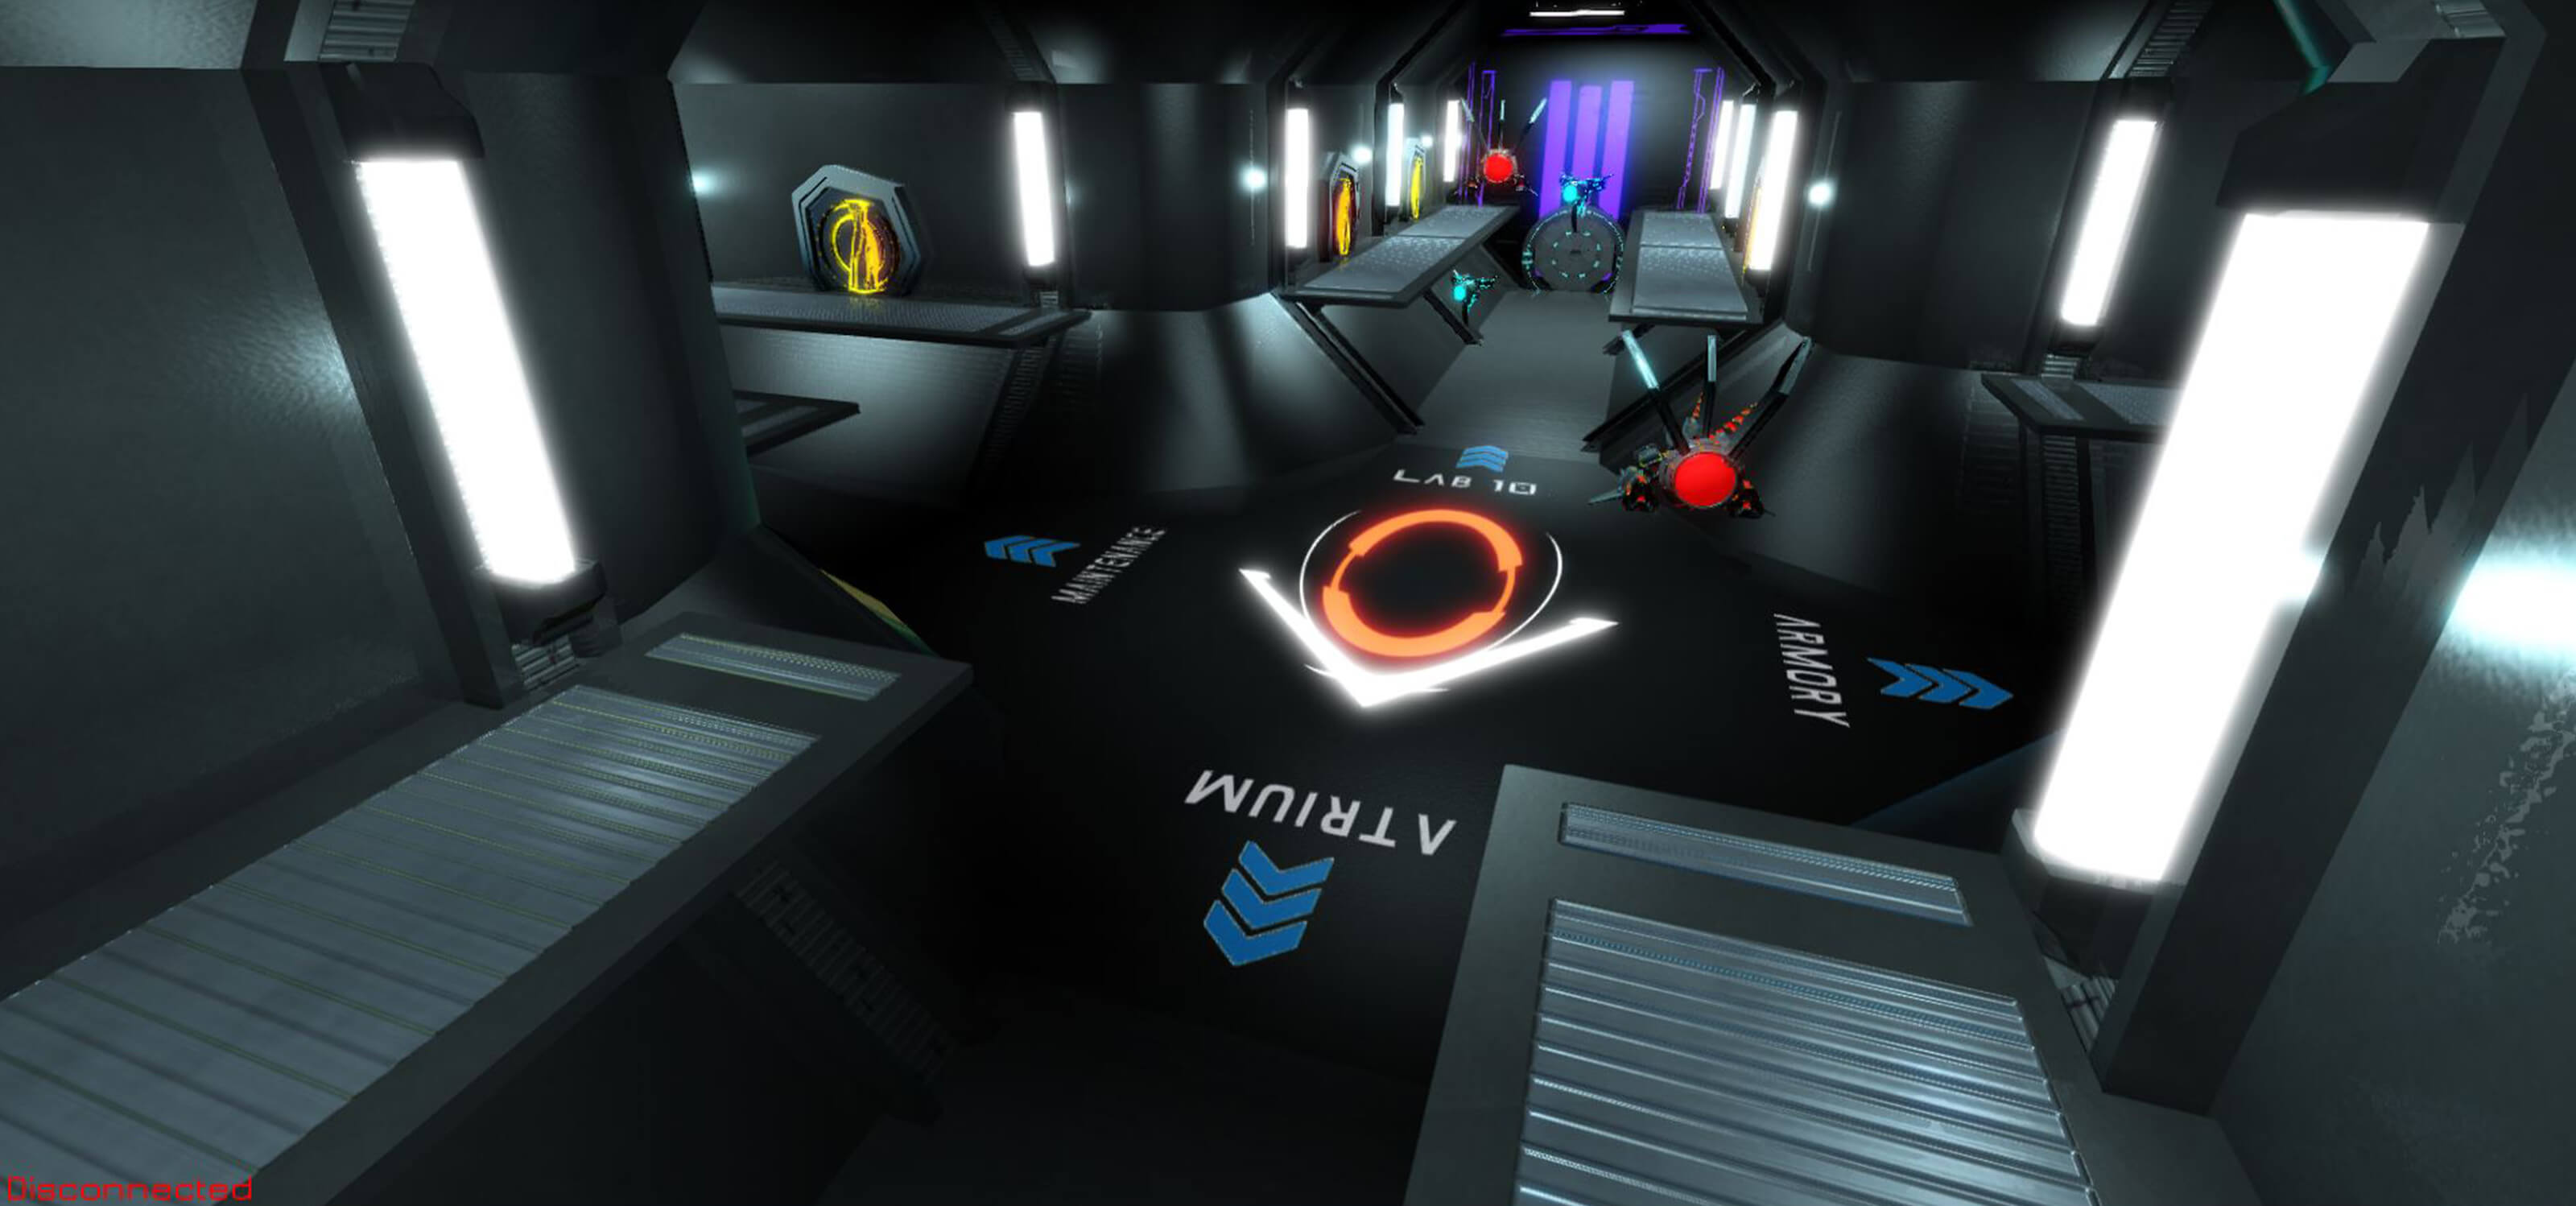 Screenshot from Chrono-Drive of directional signage on the floor of the research station